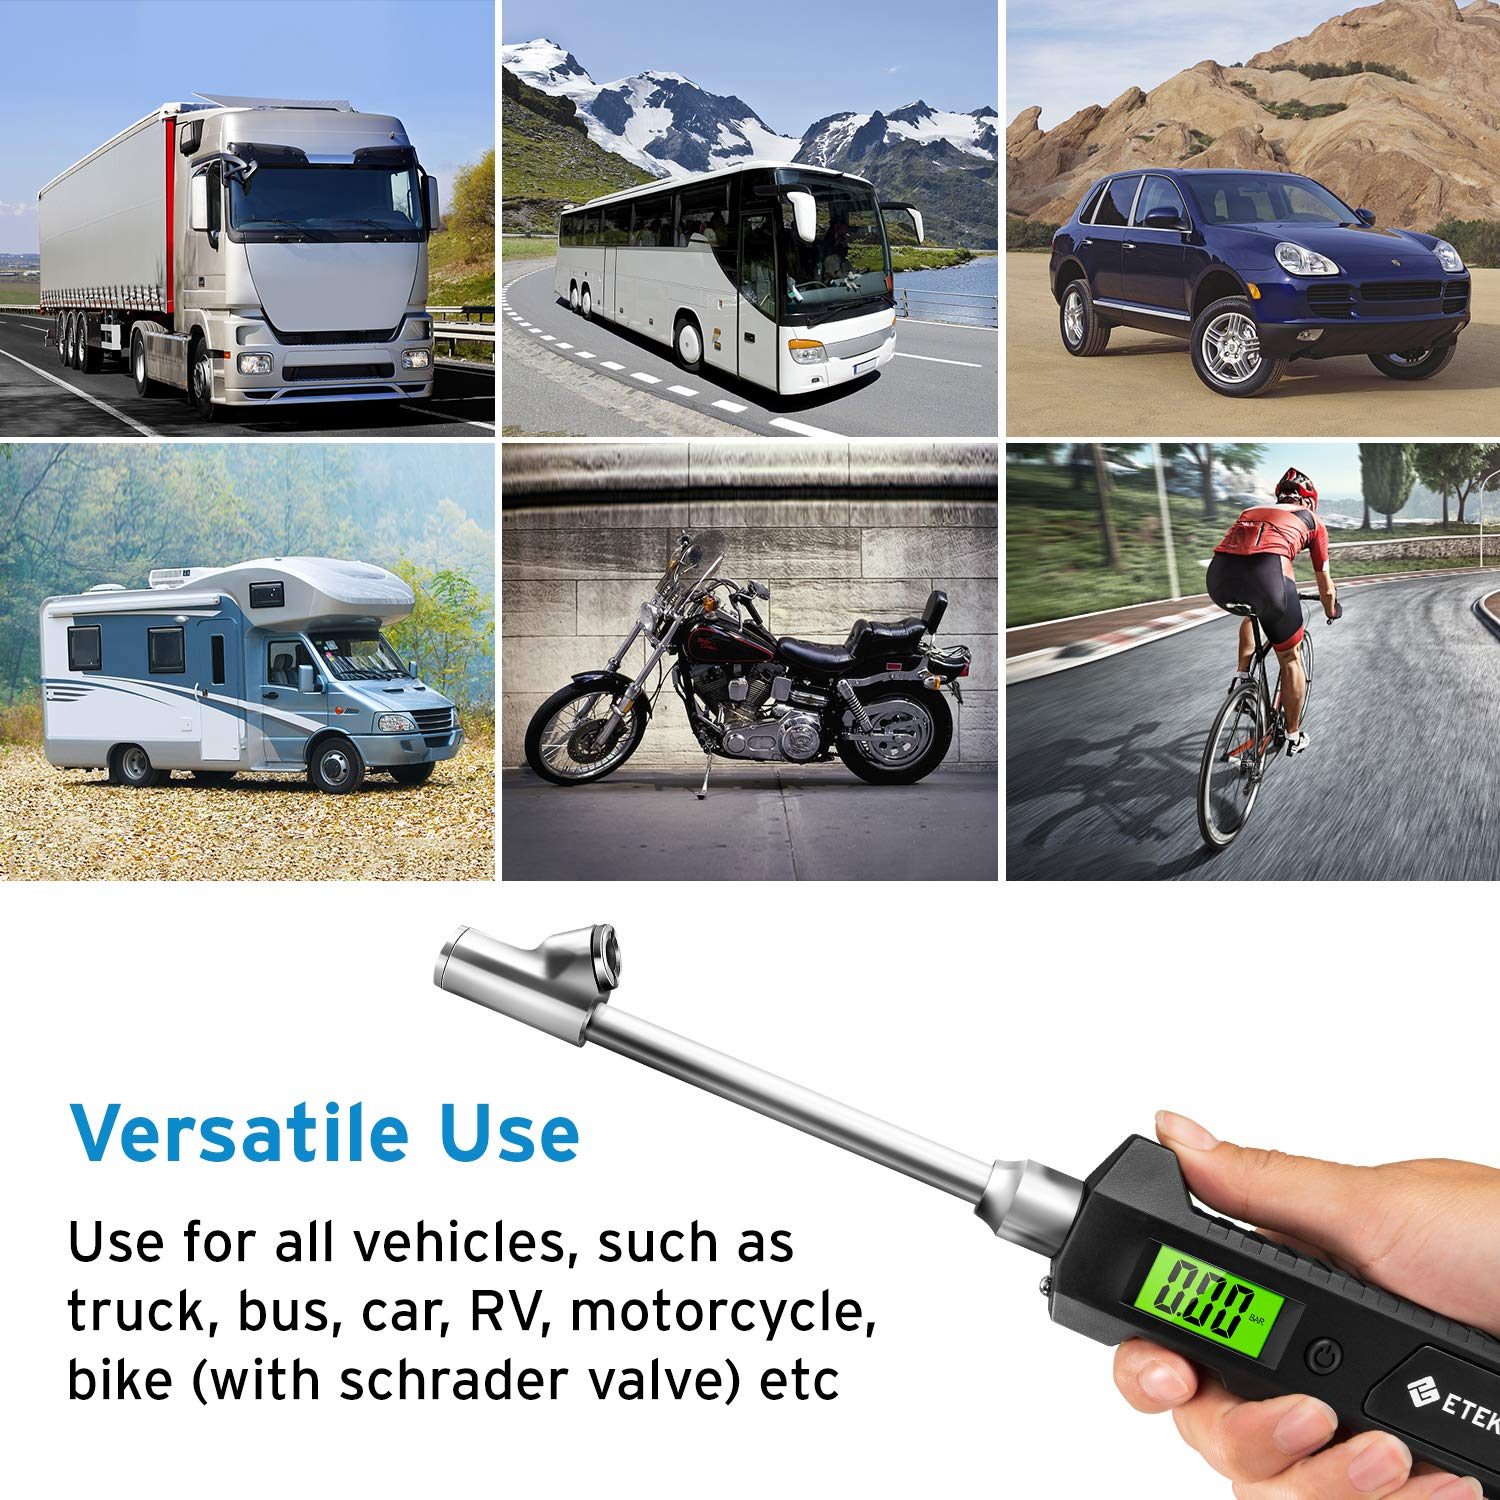 Dual Head RV Heavy Duty Monitoring System Stainless Steel Made for Truck Bike Car 4 Setting with Backlight LCD and Flashlight Etekcity Digital Tire Pressure Gauge 230 PSI